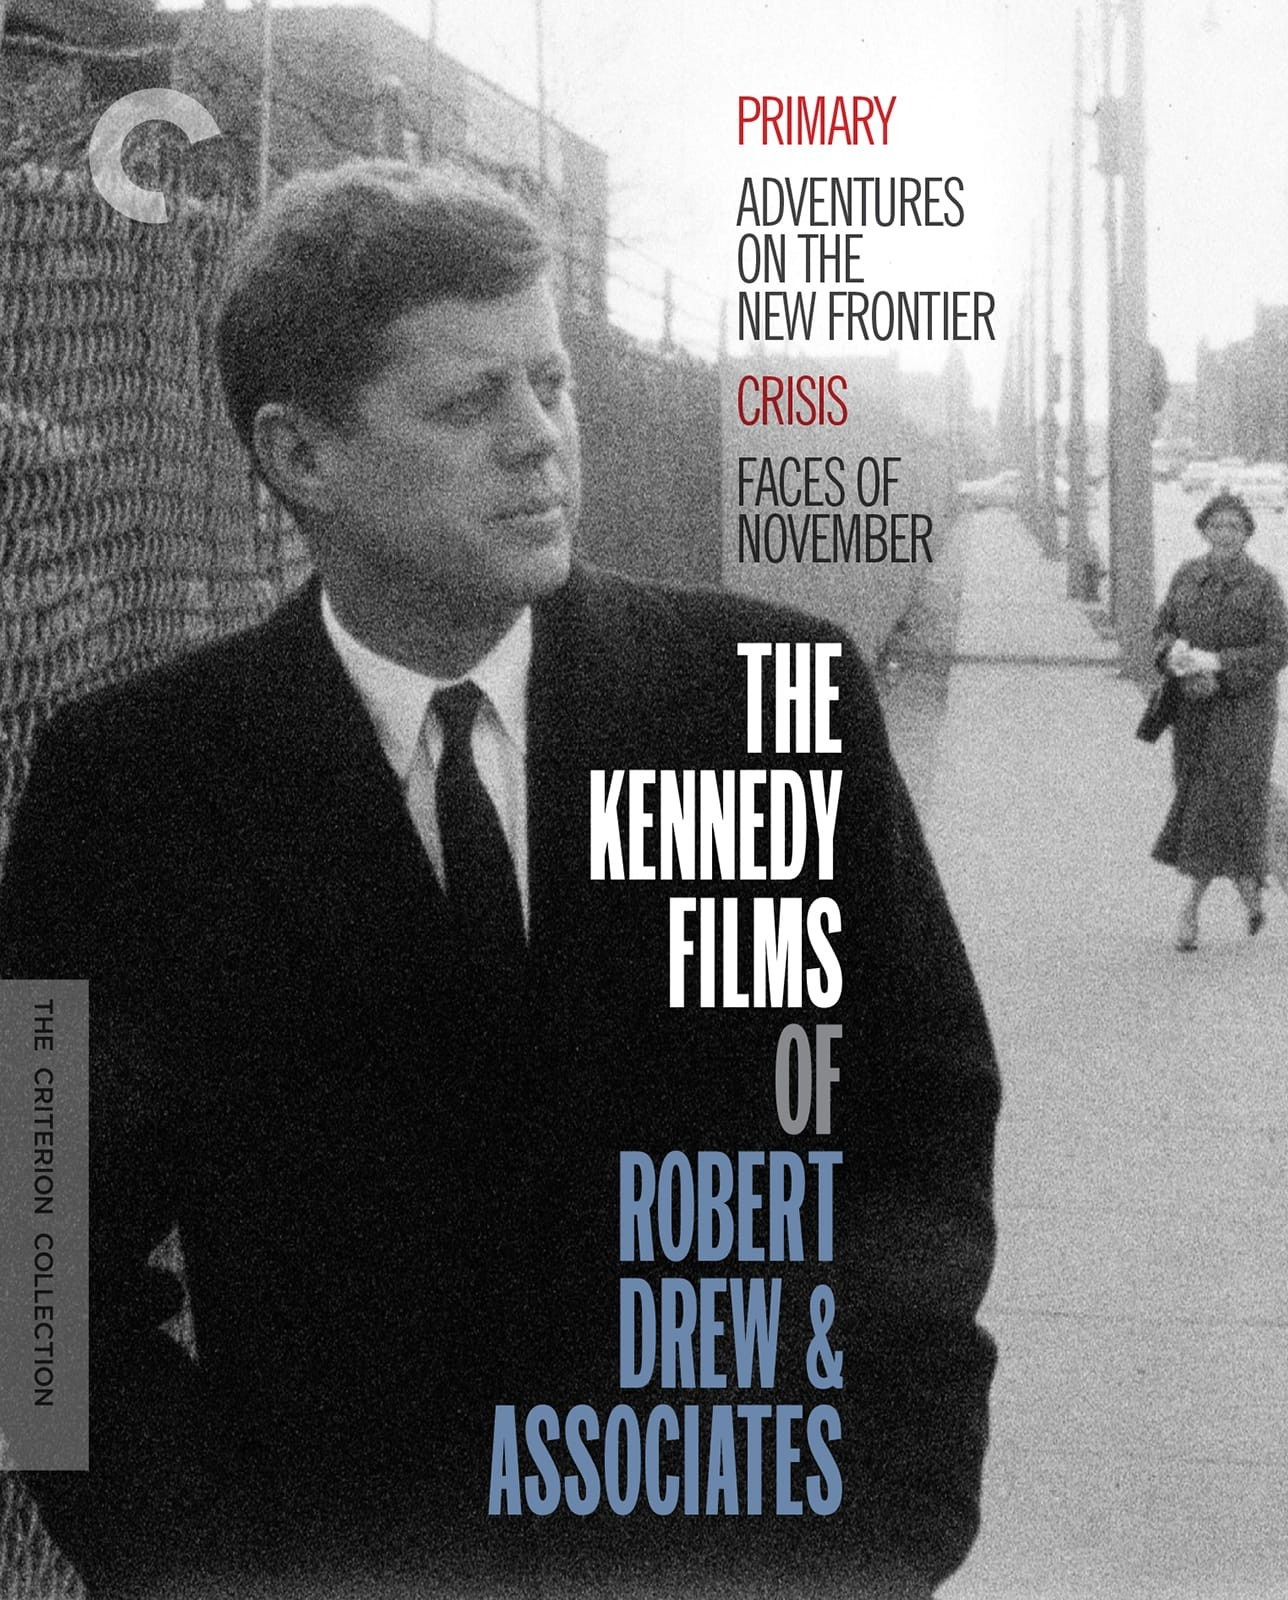 The Kennedy Films of Robert Drew and Associates (1960-1964) The Criterion Collection Blu-ray